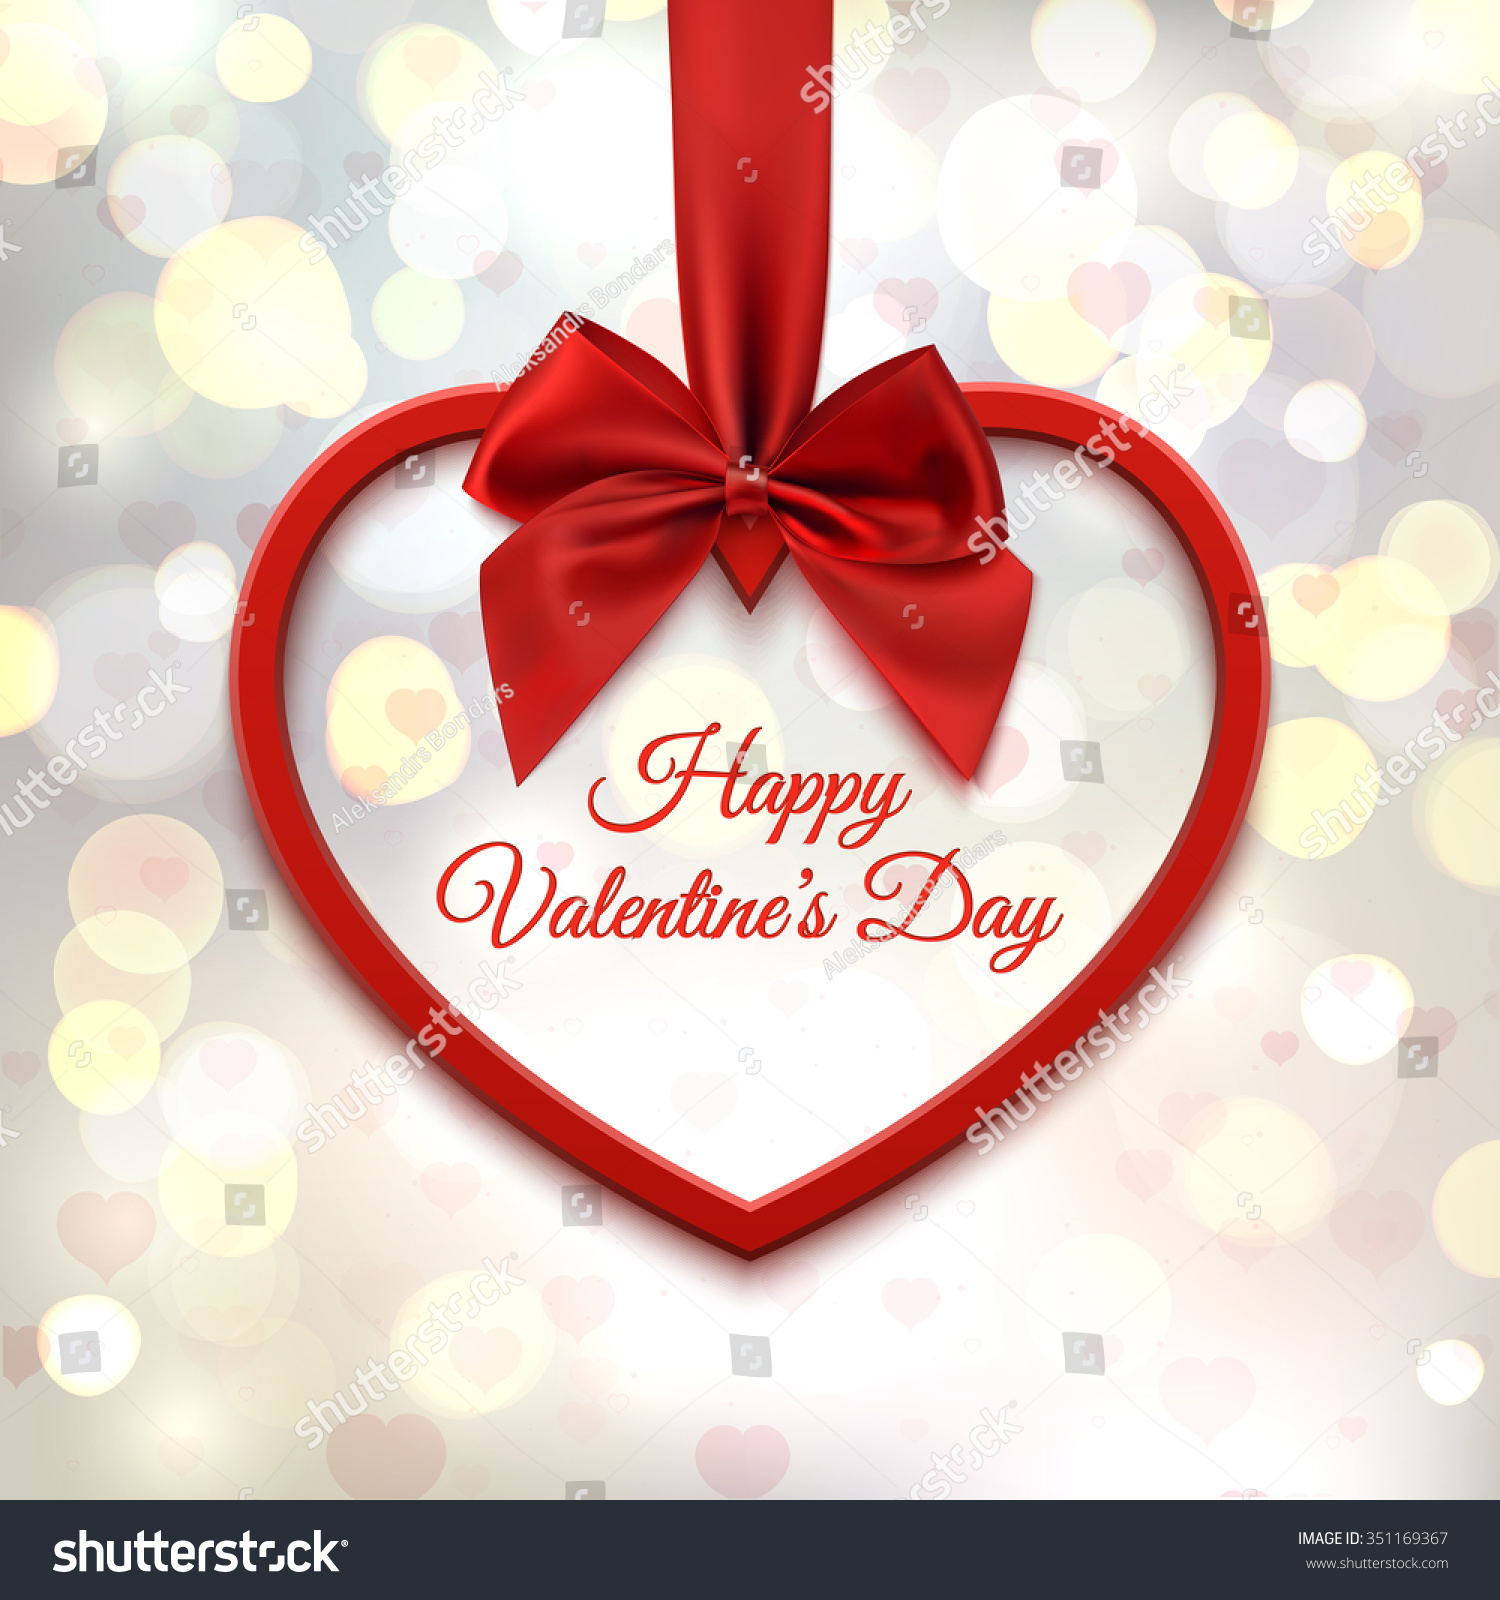 Happy valentines day greeting card template stock vector 351169367 happy valentines day greeting card template red heart with red ribbon and bow kristyandbryce Image collections